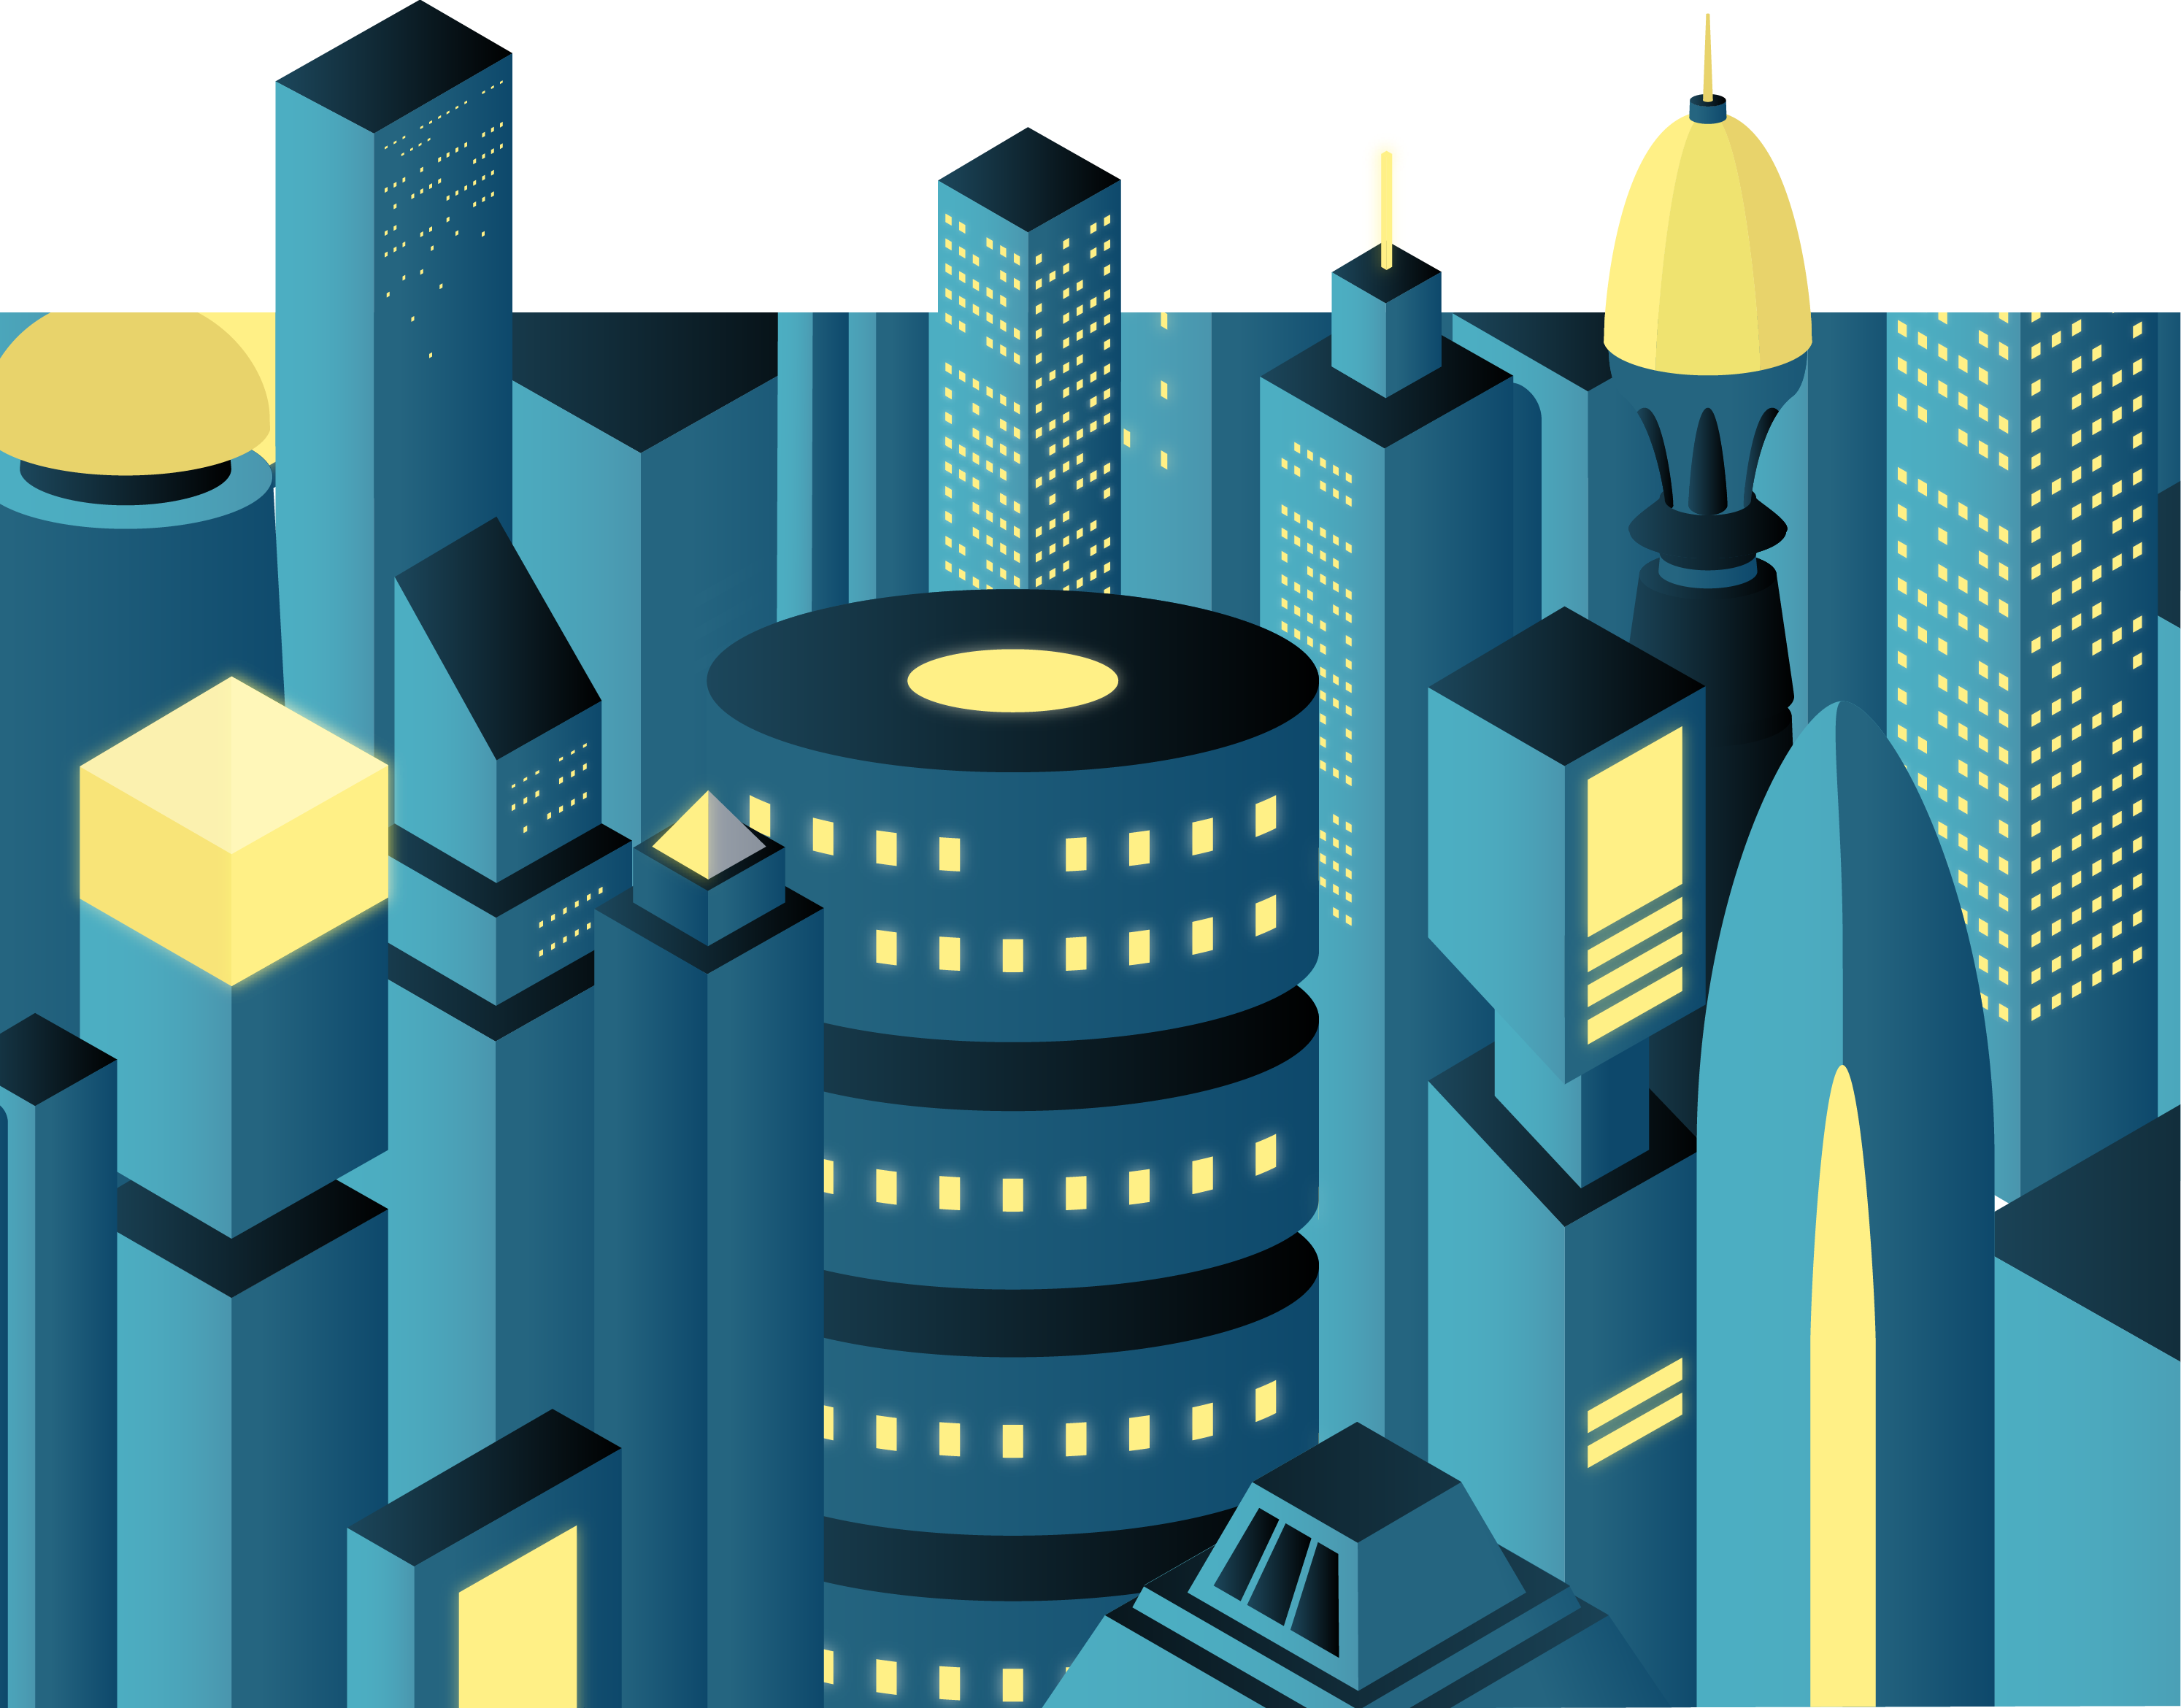 graphic-cityscape-three@2x